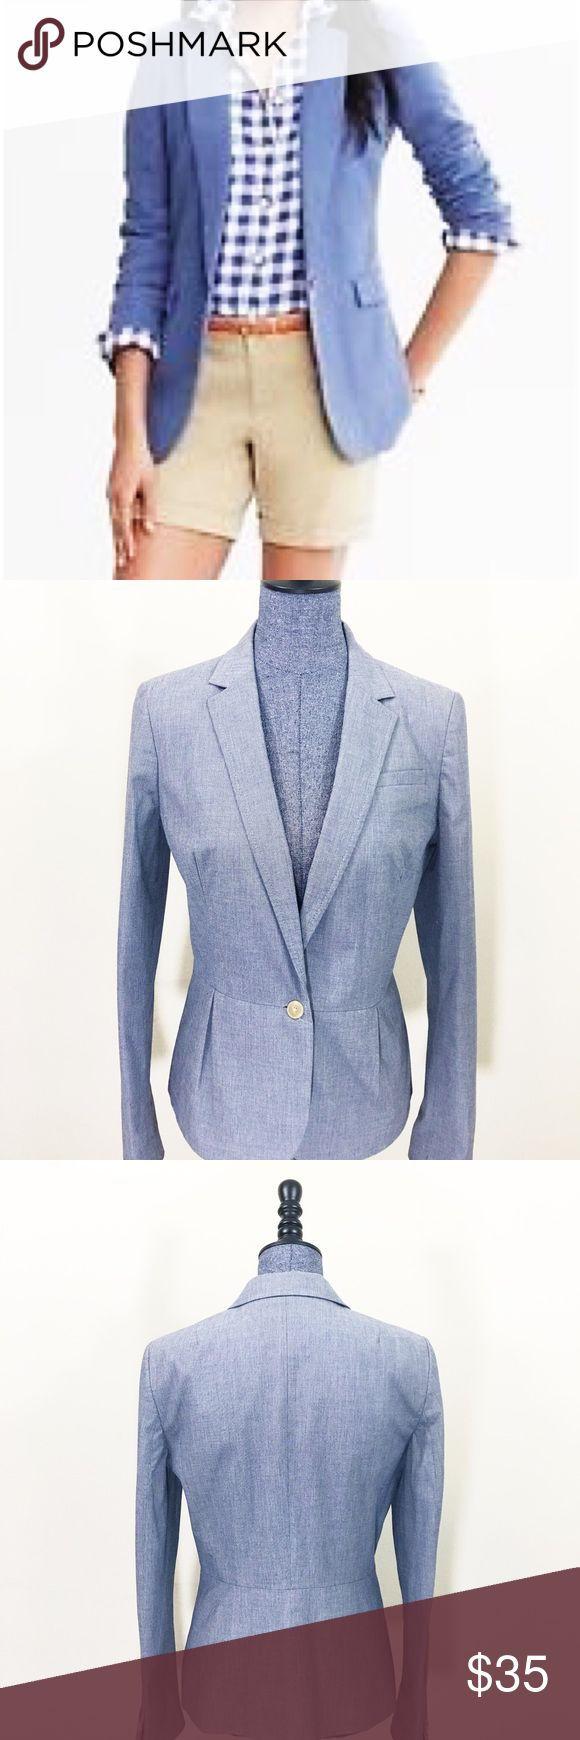 Banana Republic Chambray Blazer The blazer is in excellent used condition  ✂️Bundle & Save: 10% Off 2 or More Items ❌ No Trades 📬 Shipping within 48 hours Banana Republic Jackets & Coats Blazers